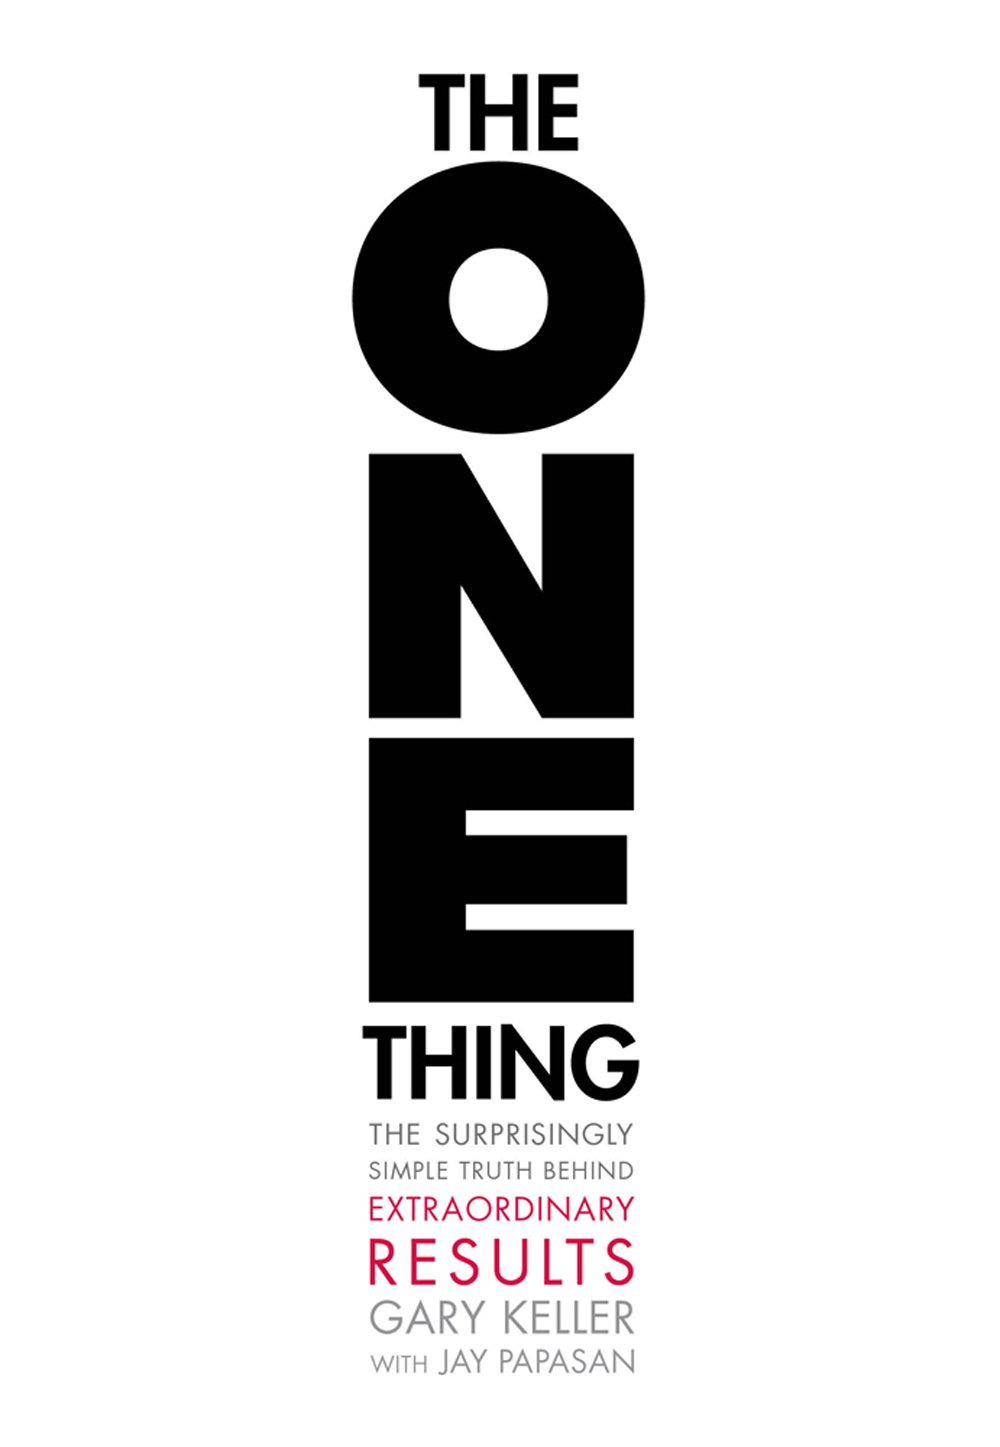 The ONE Thing - Book cover